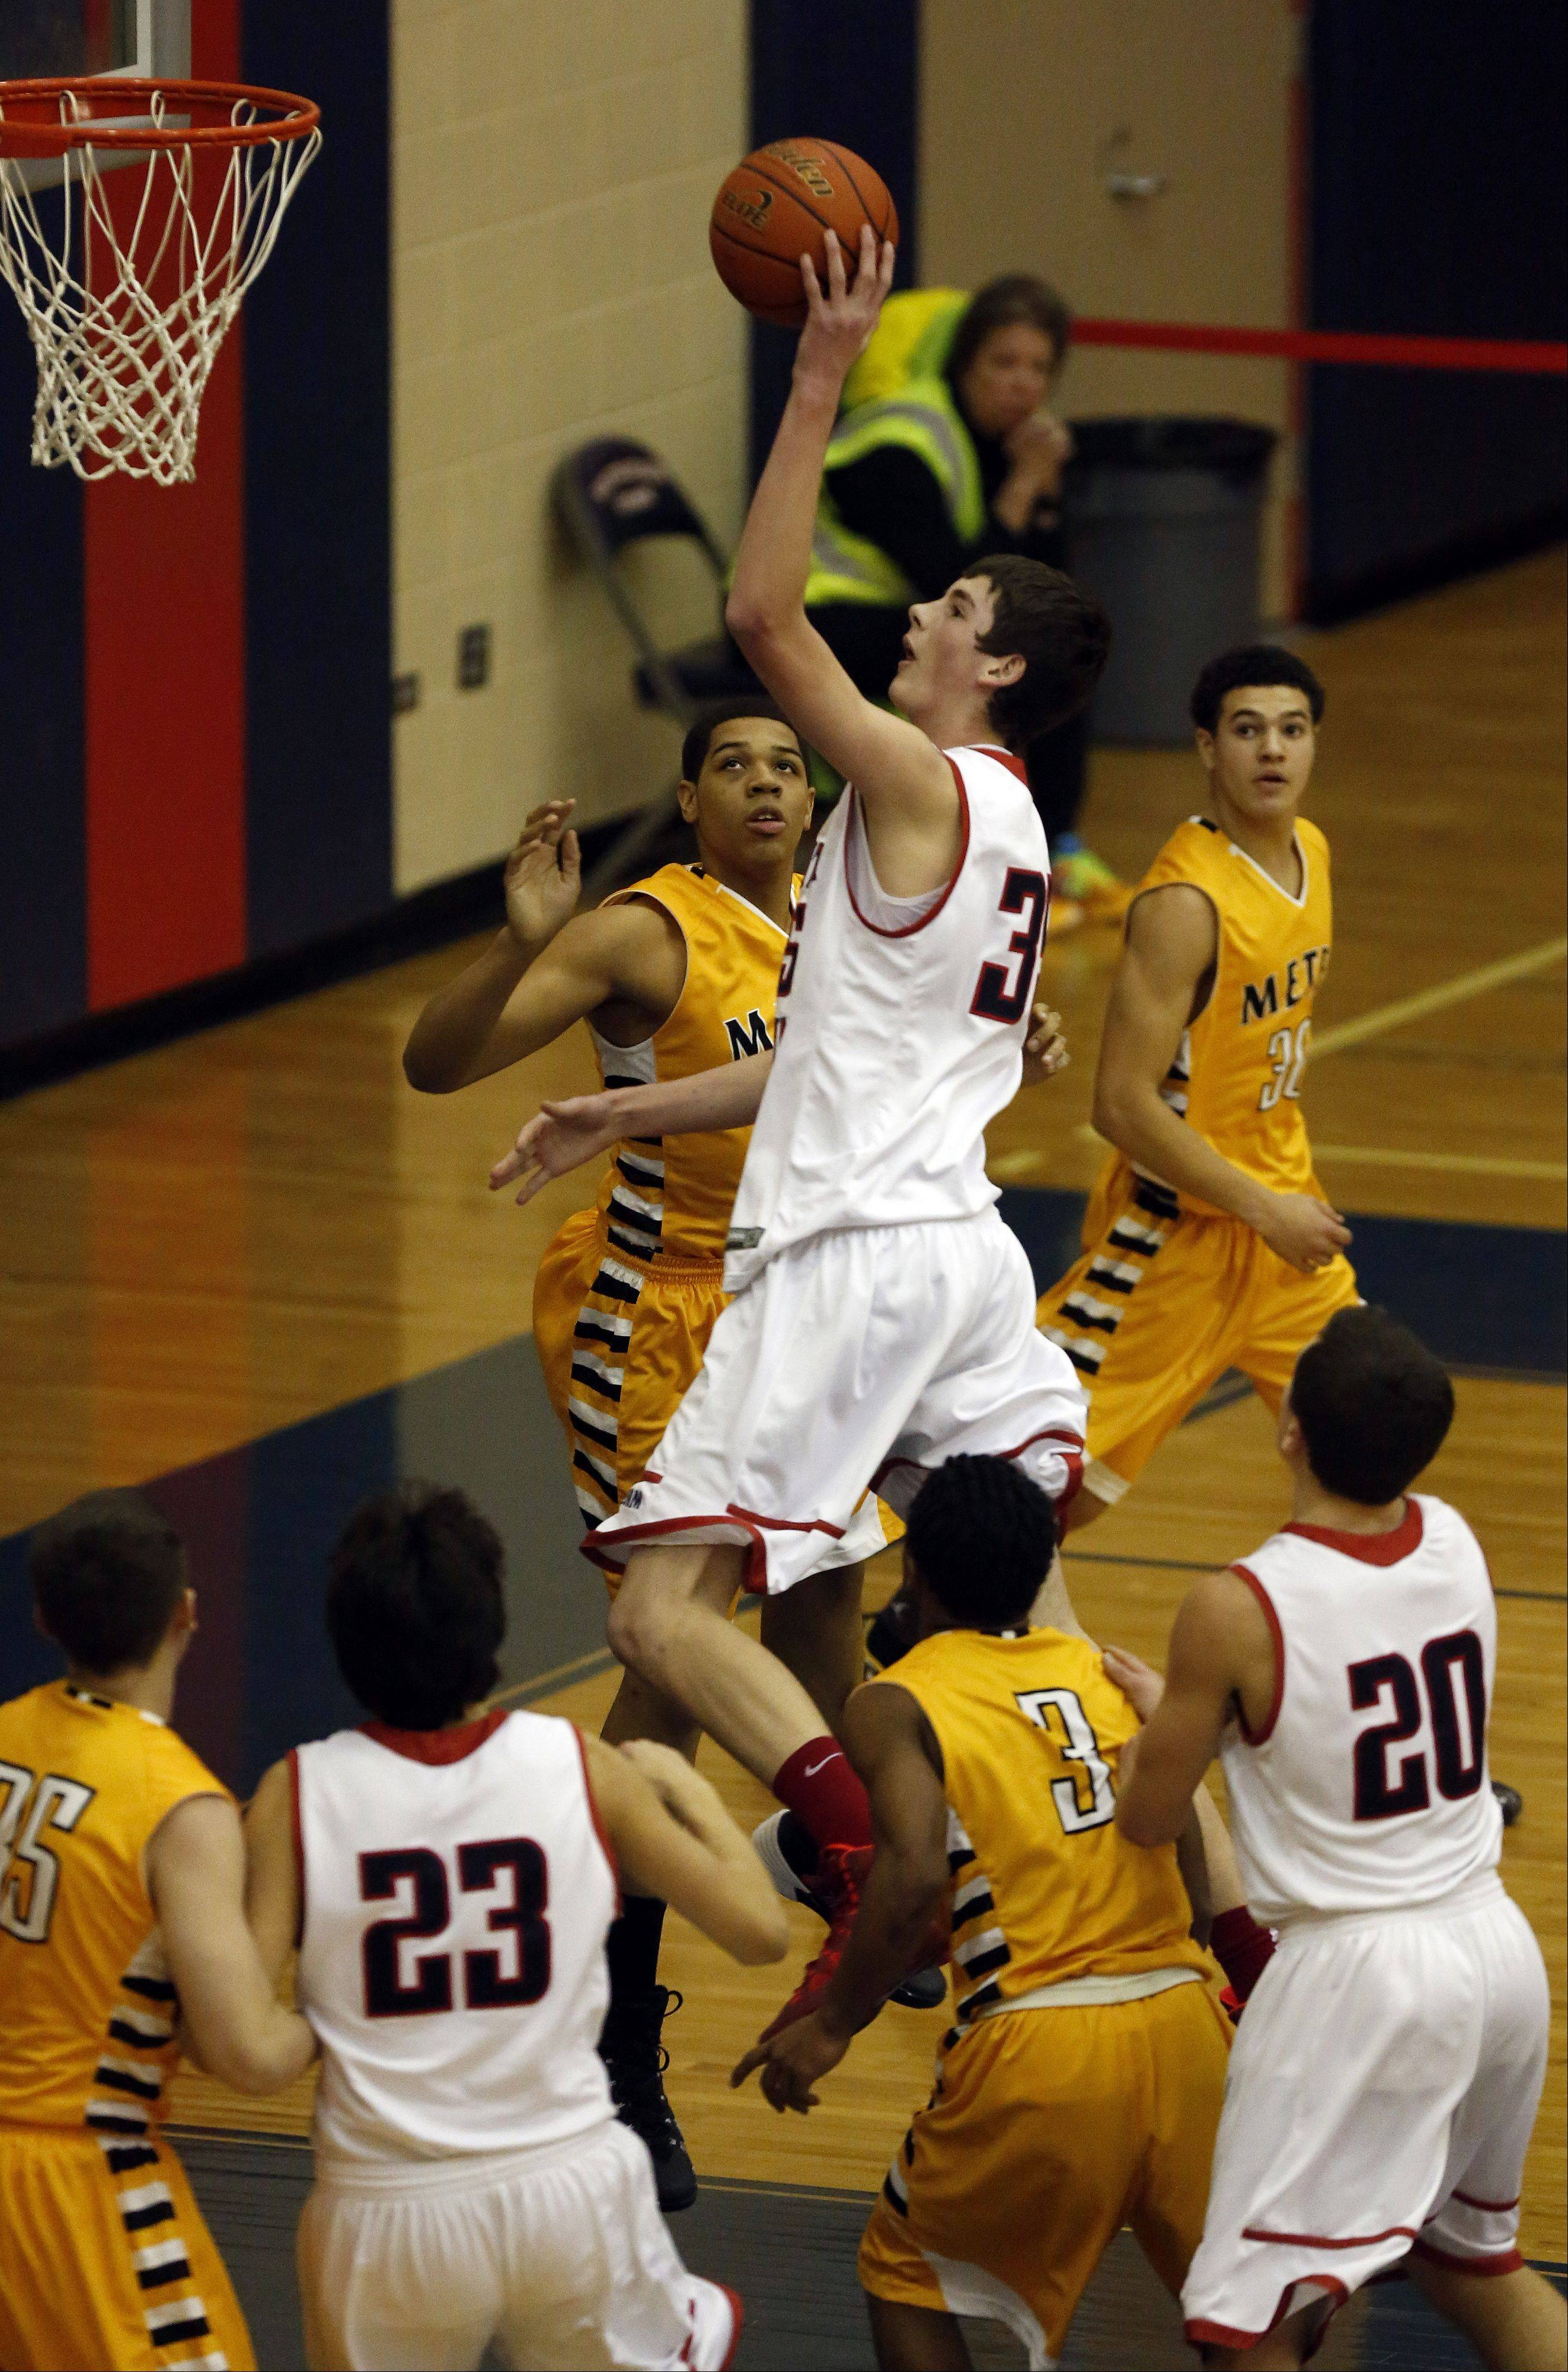 South Elgin's Tyler Hankins goes strong to the hoop against Metea Valley at South Elgin Friday.